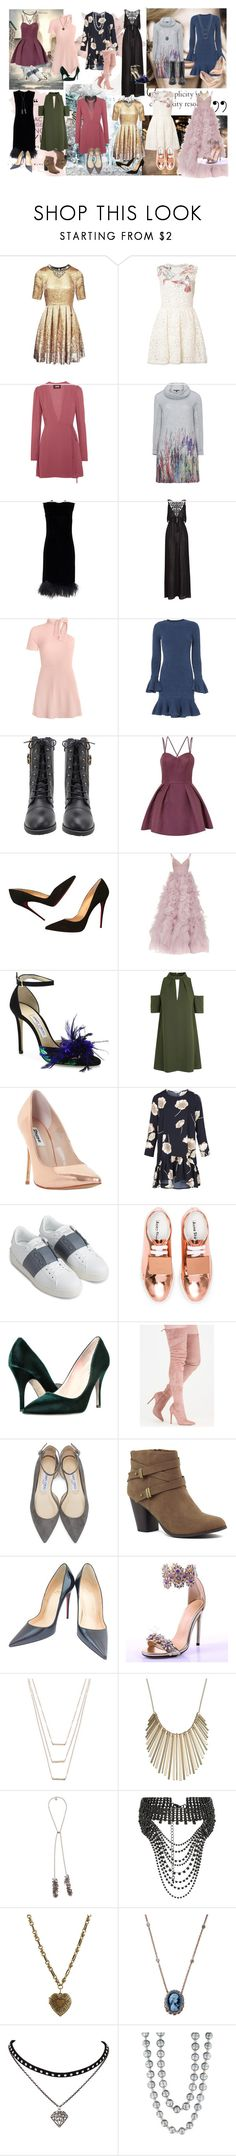 """""""Fantastic Beast & Where to Find Them - Premiere"""" by bileyuna ❤ liked on Polyvore featuring Matthew Williamson, RED Valentino, Reformation, Twister, Topshop, Exclusive for Intermix, Chi Chi, Christian Louboutin, Monique Lhuillier and Jimmy Choo"""